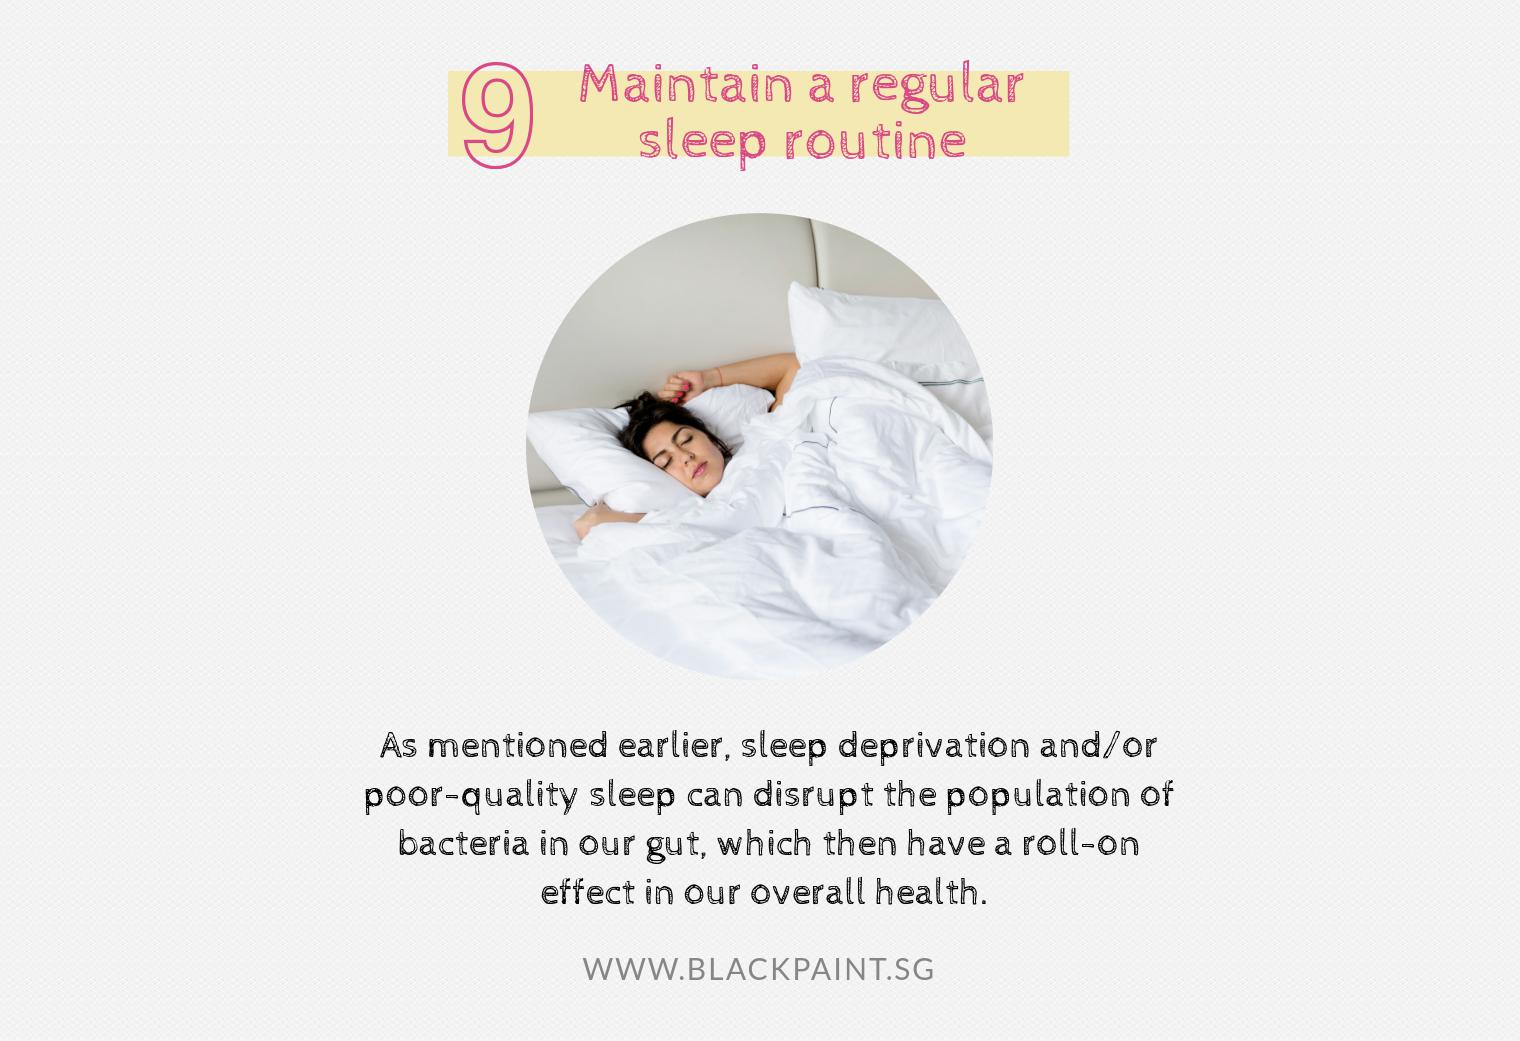 maintain a regular sleep routine